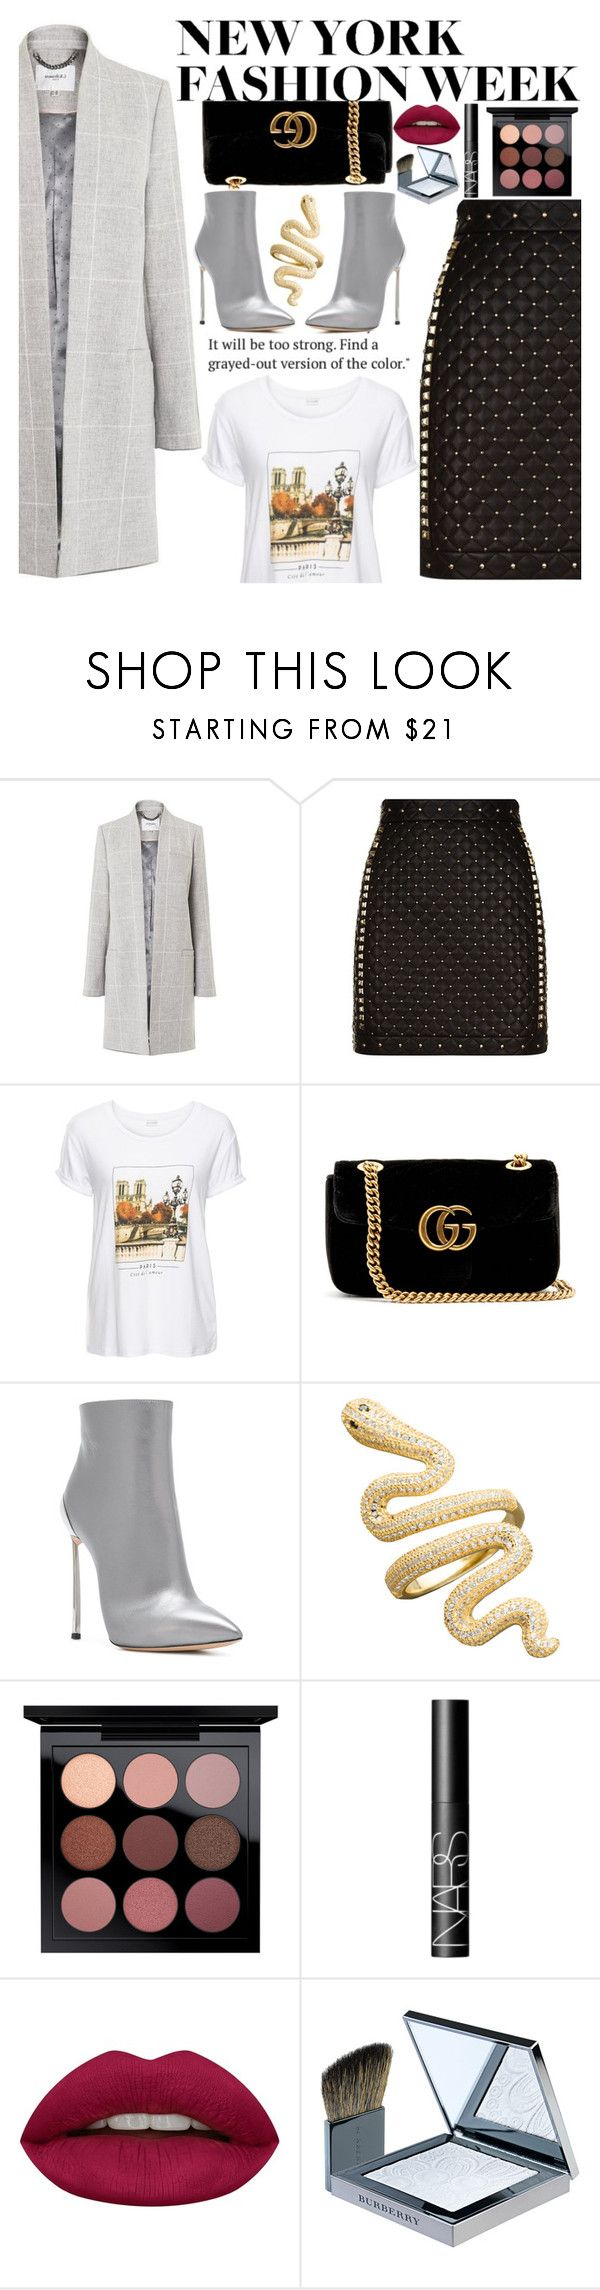 """""""Untitled #2487"""" by anarita11 ❤ liked on Polyvore featuring L.K.Bennett, Balmain, Gucci, Casadei, NARS Cosmetics, Huda Beauty and Burberry"""